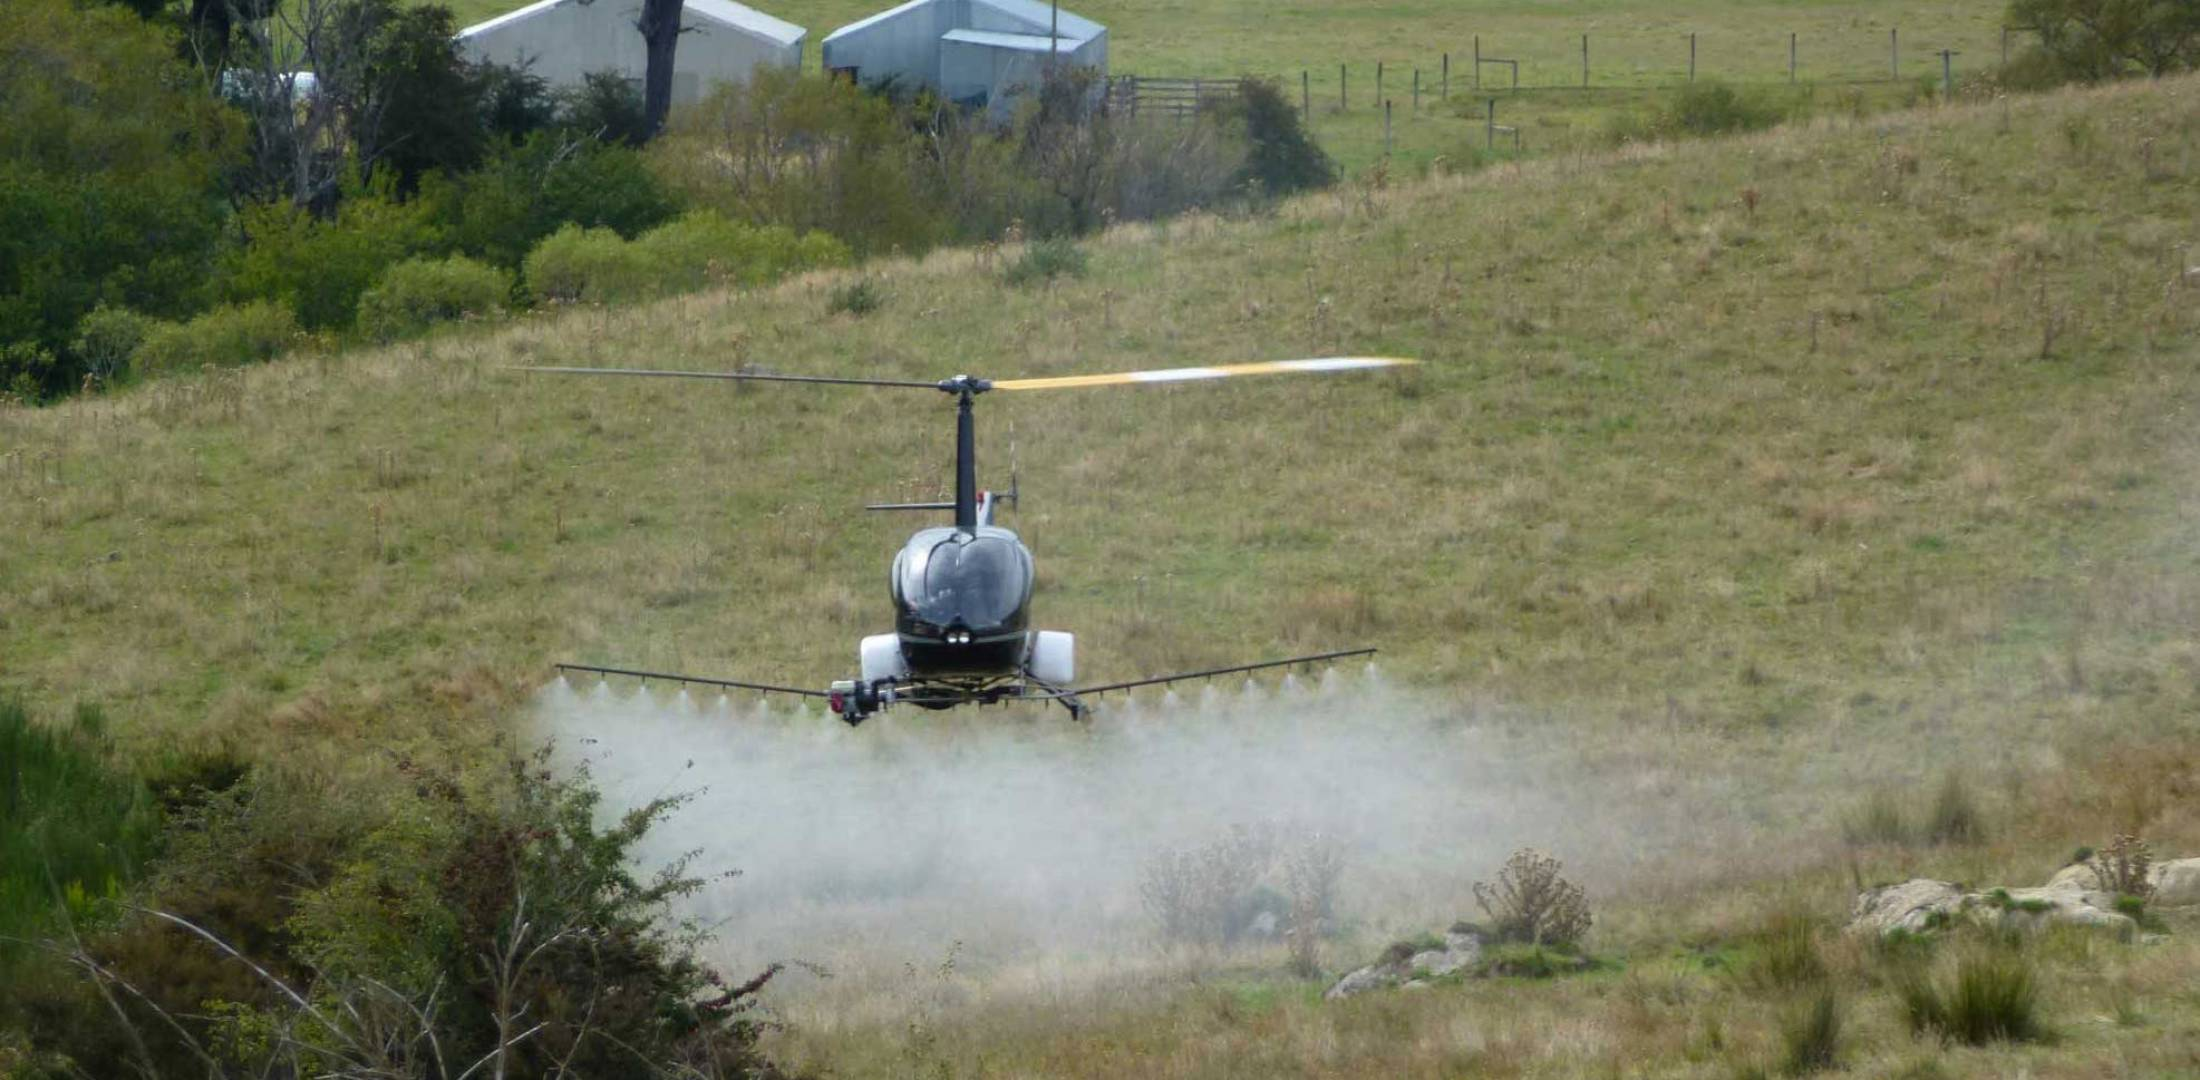 Agro-drone R22-UV in flight